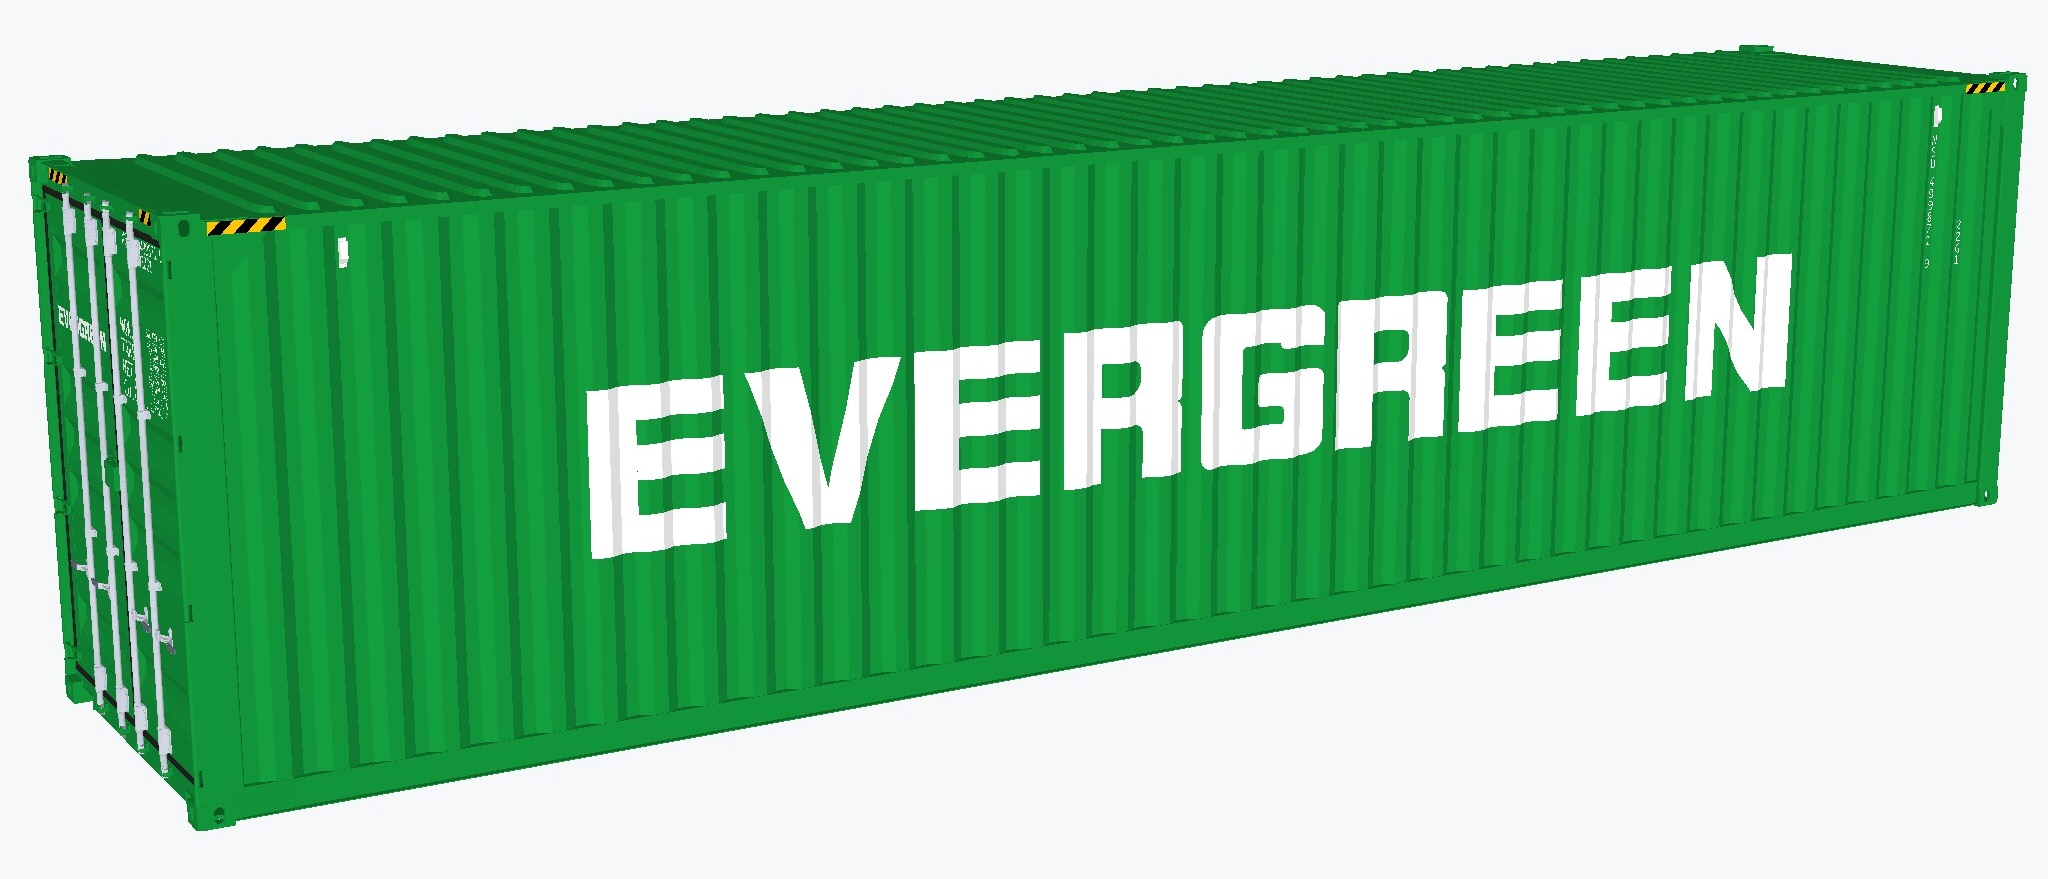 charming evergreen container Part - 2: charming evergreen container amazing design